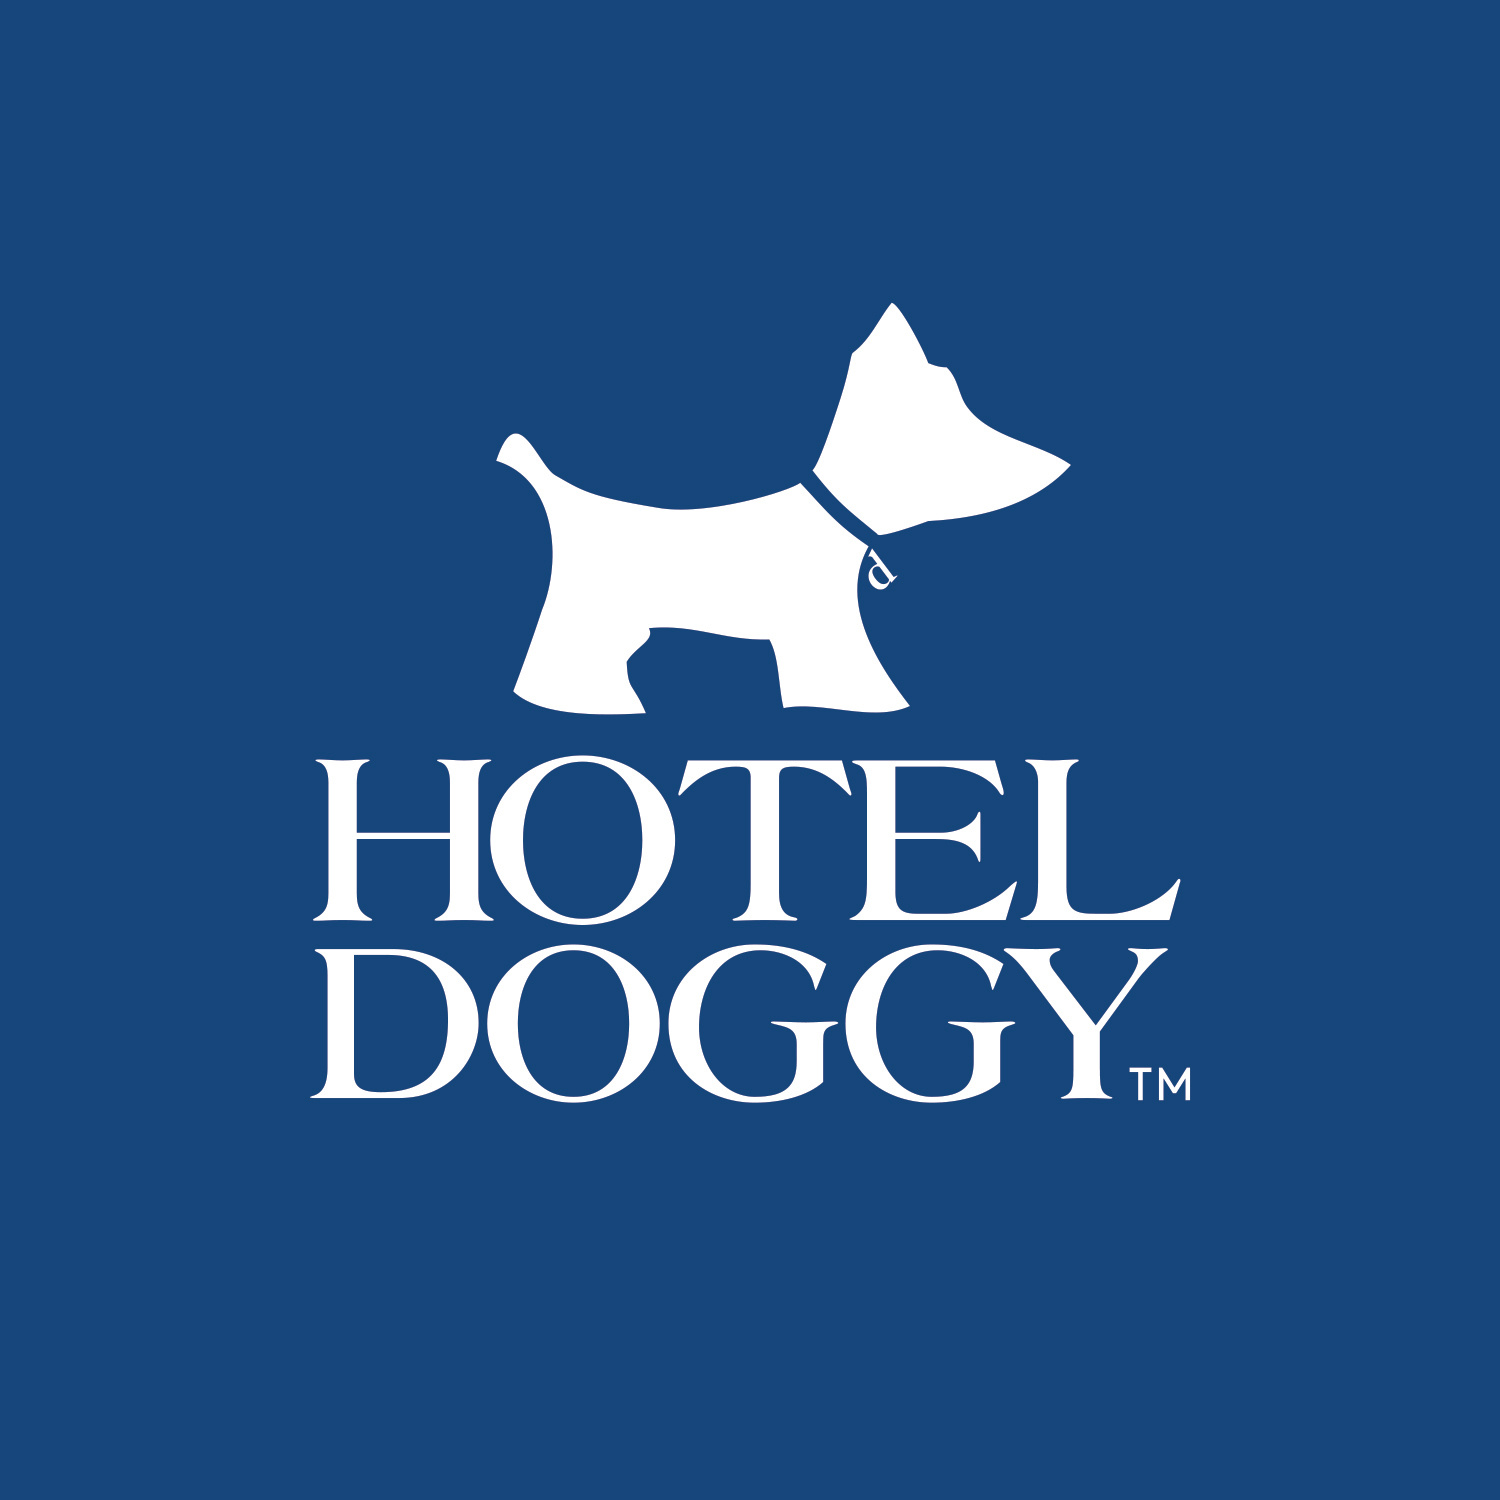 HOTEL DOGGY LOGO - BLOCK